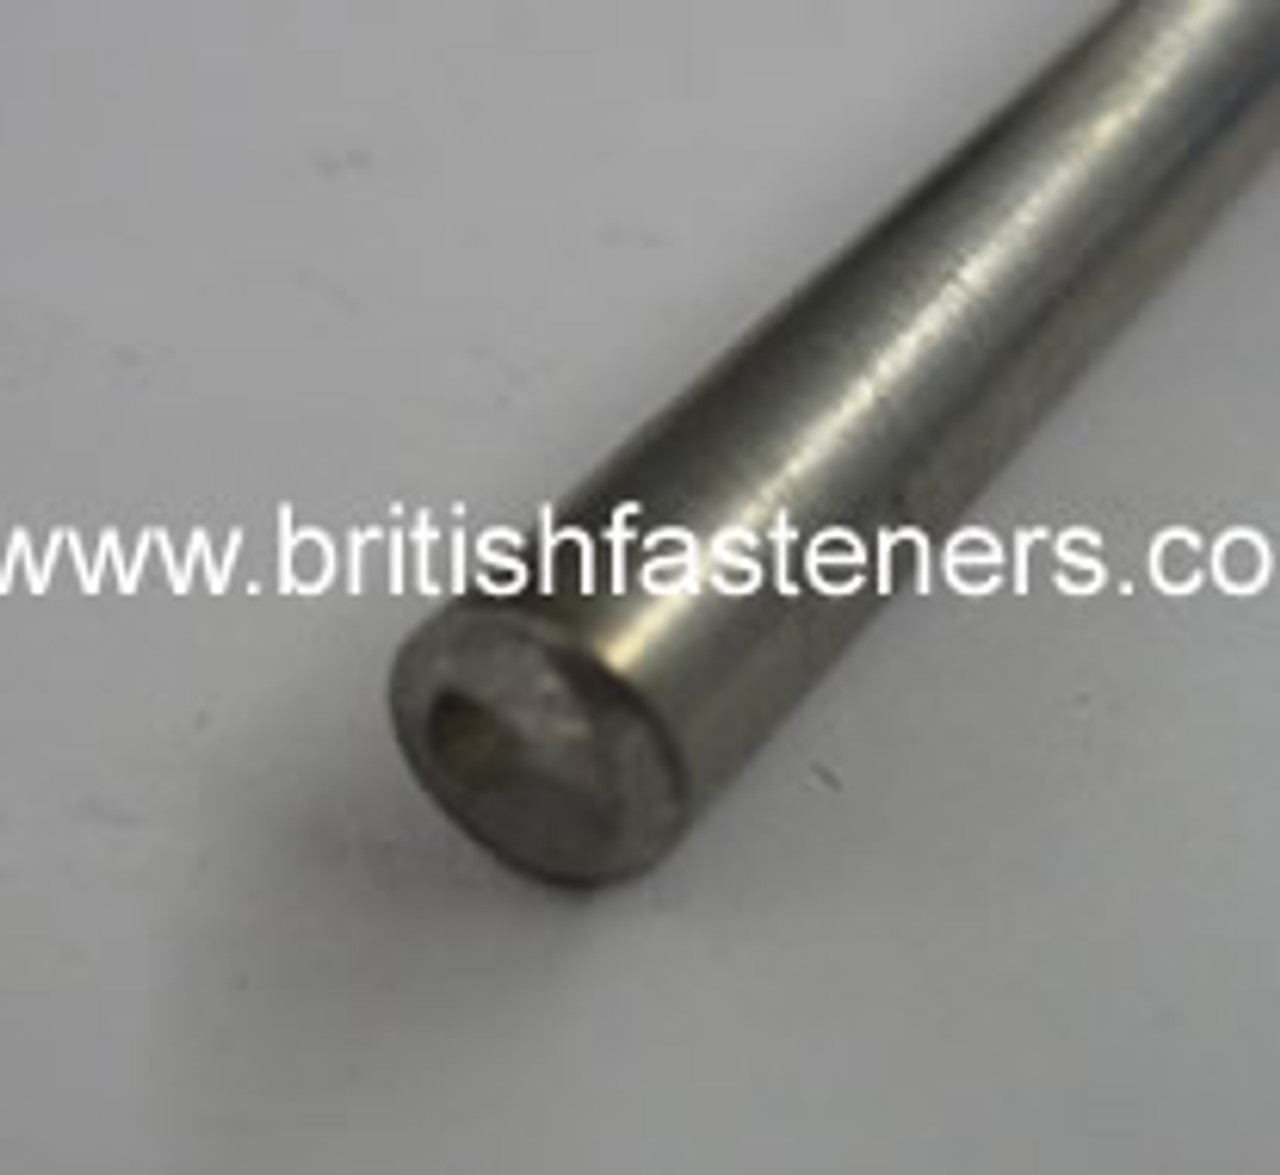 """5/16"""" STAINLESS ROUND BAR x 10"""" LONG - (5119)"""